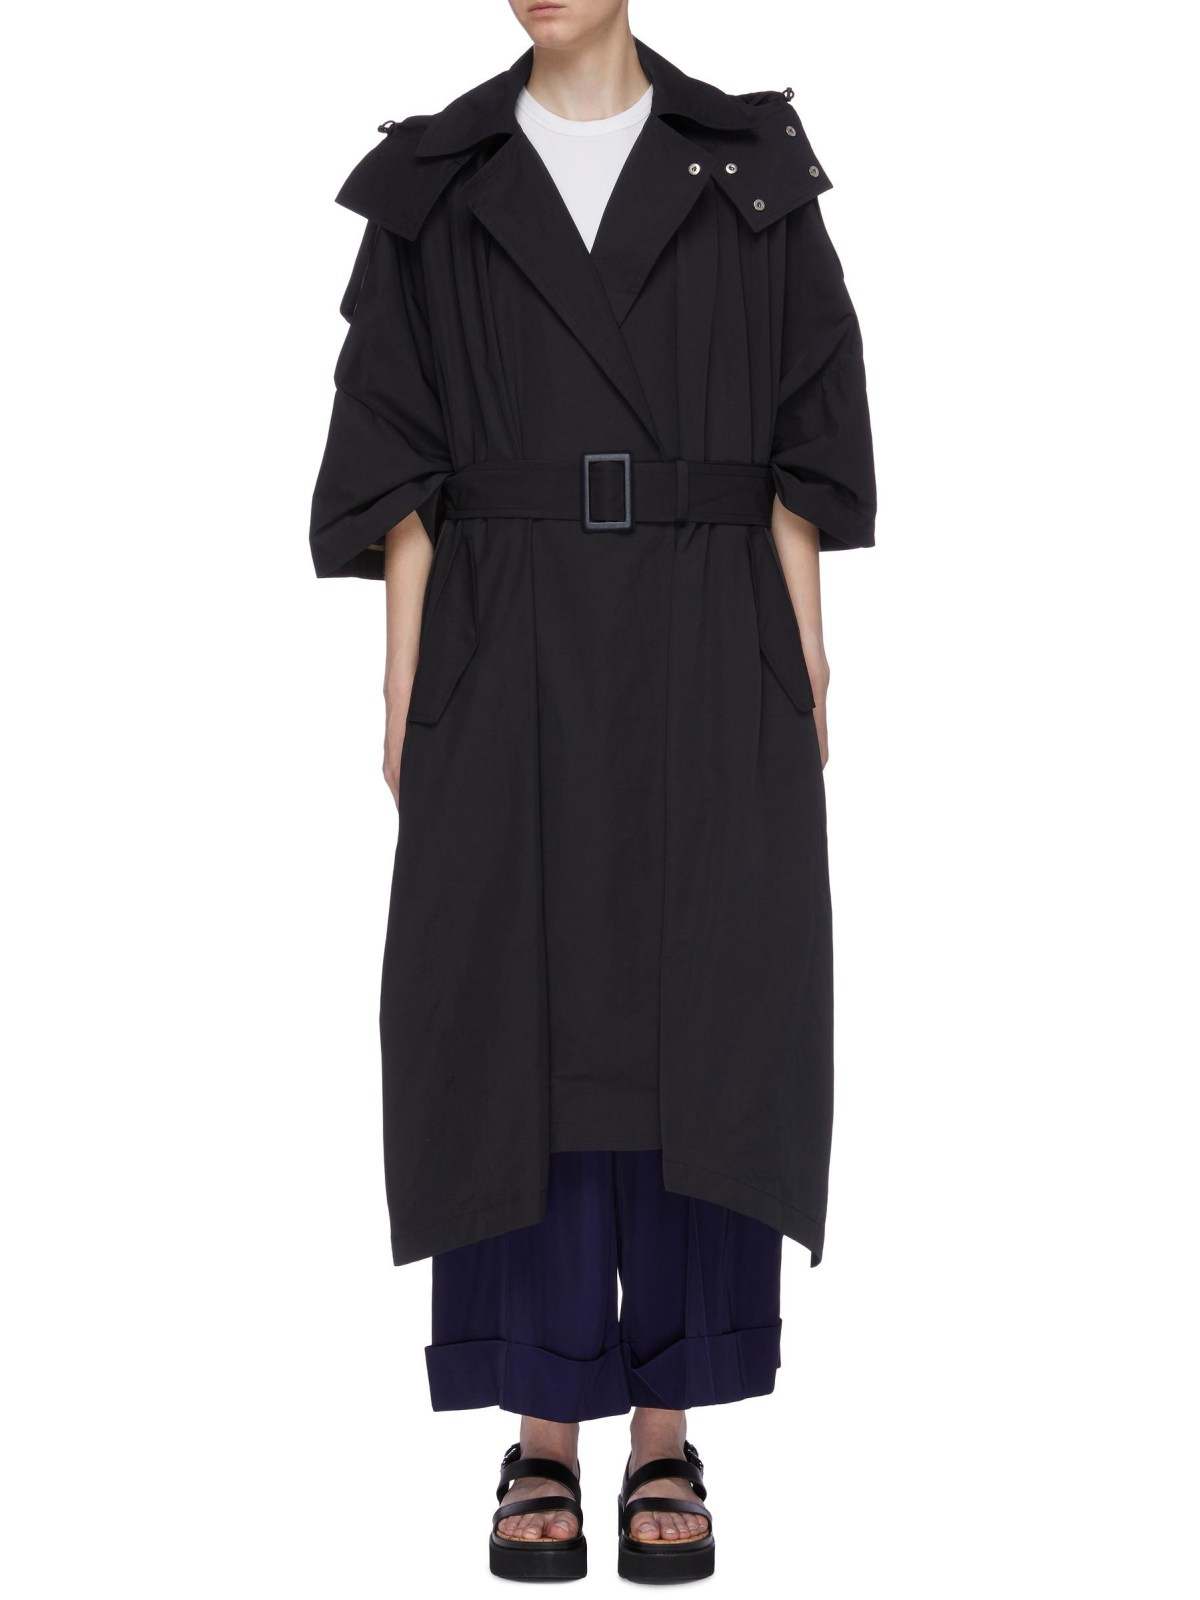 Toga Archives Belted Hooded Trench Coat HKD$8,400